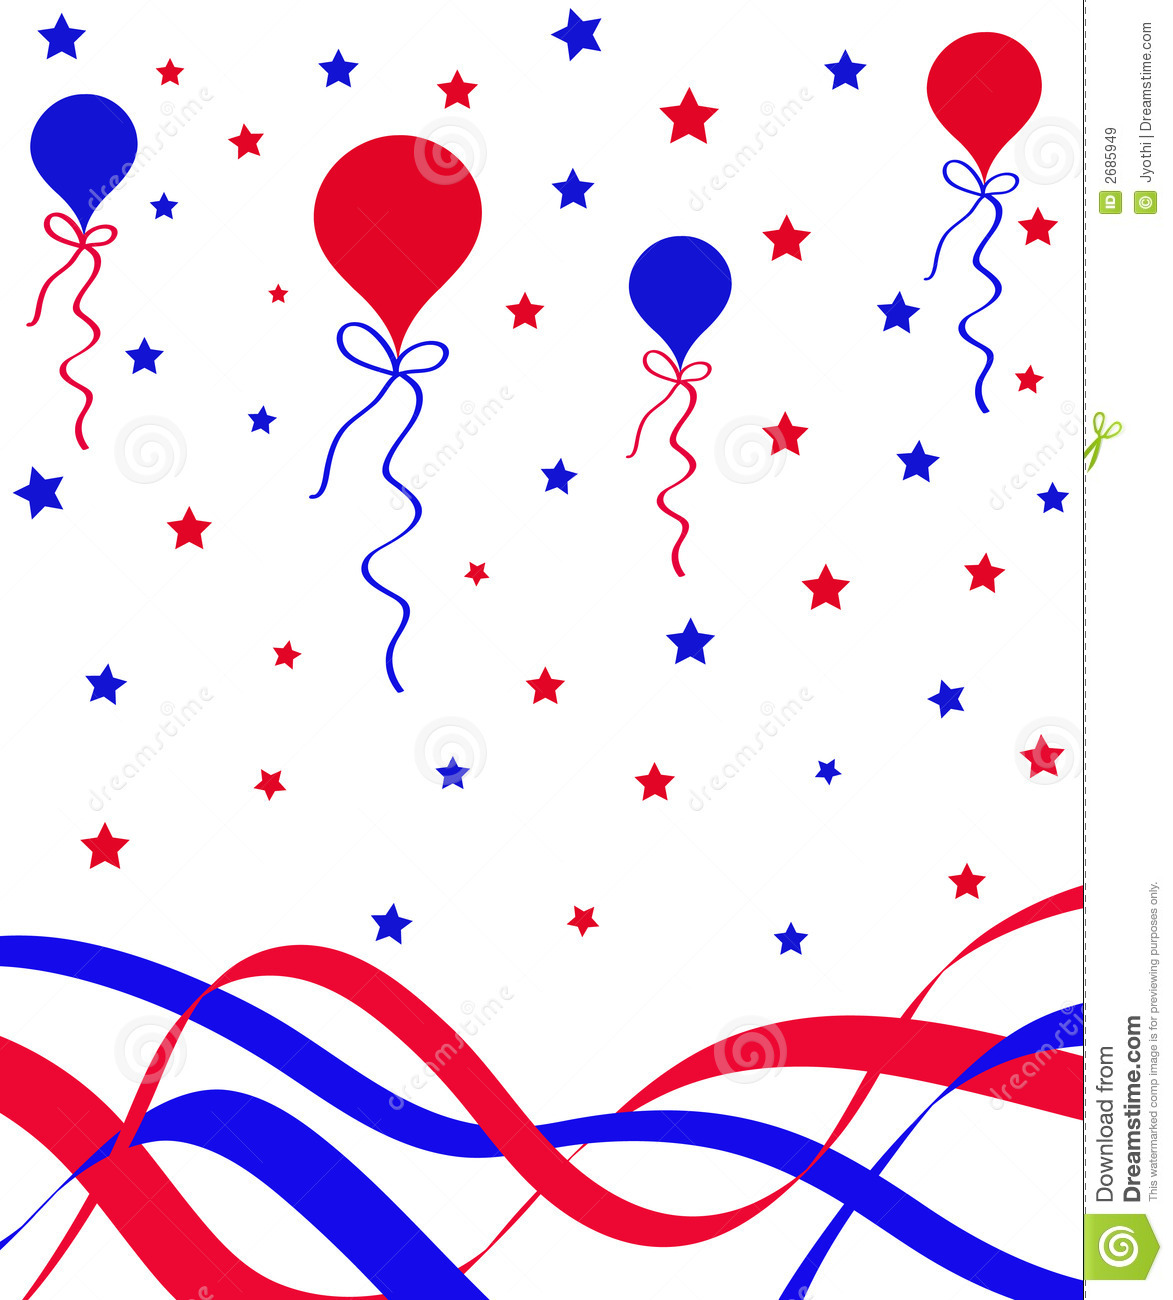 Balloons And Ribbons Stock Illustration Image Of Abstract